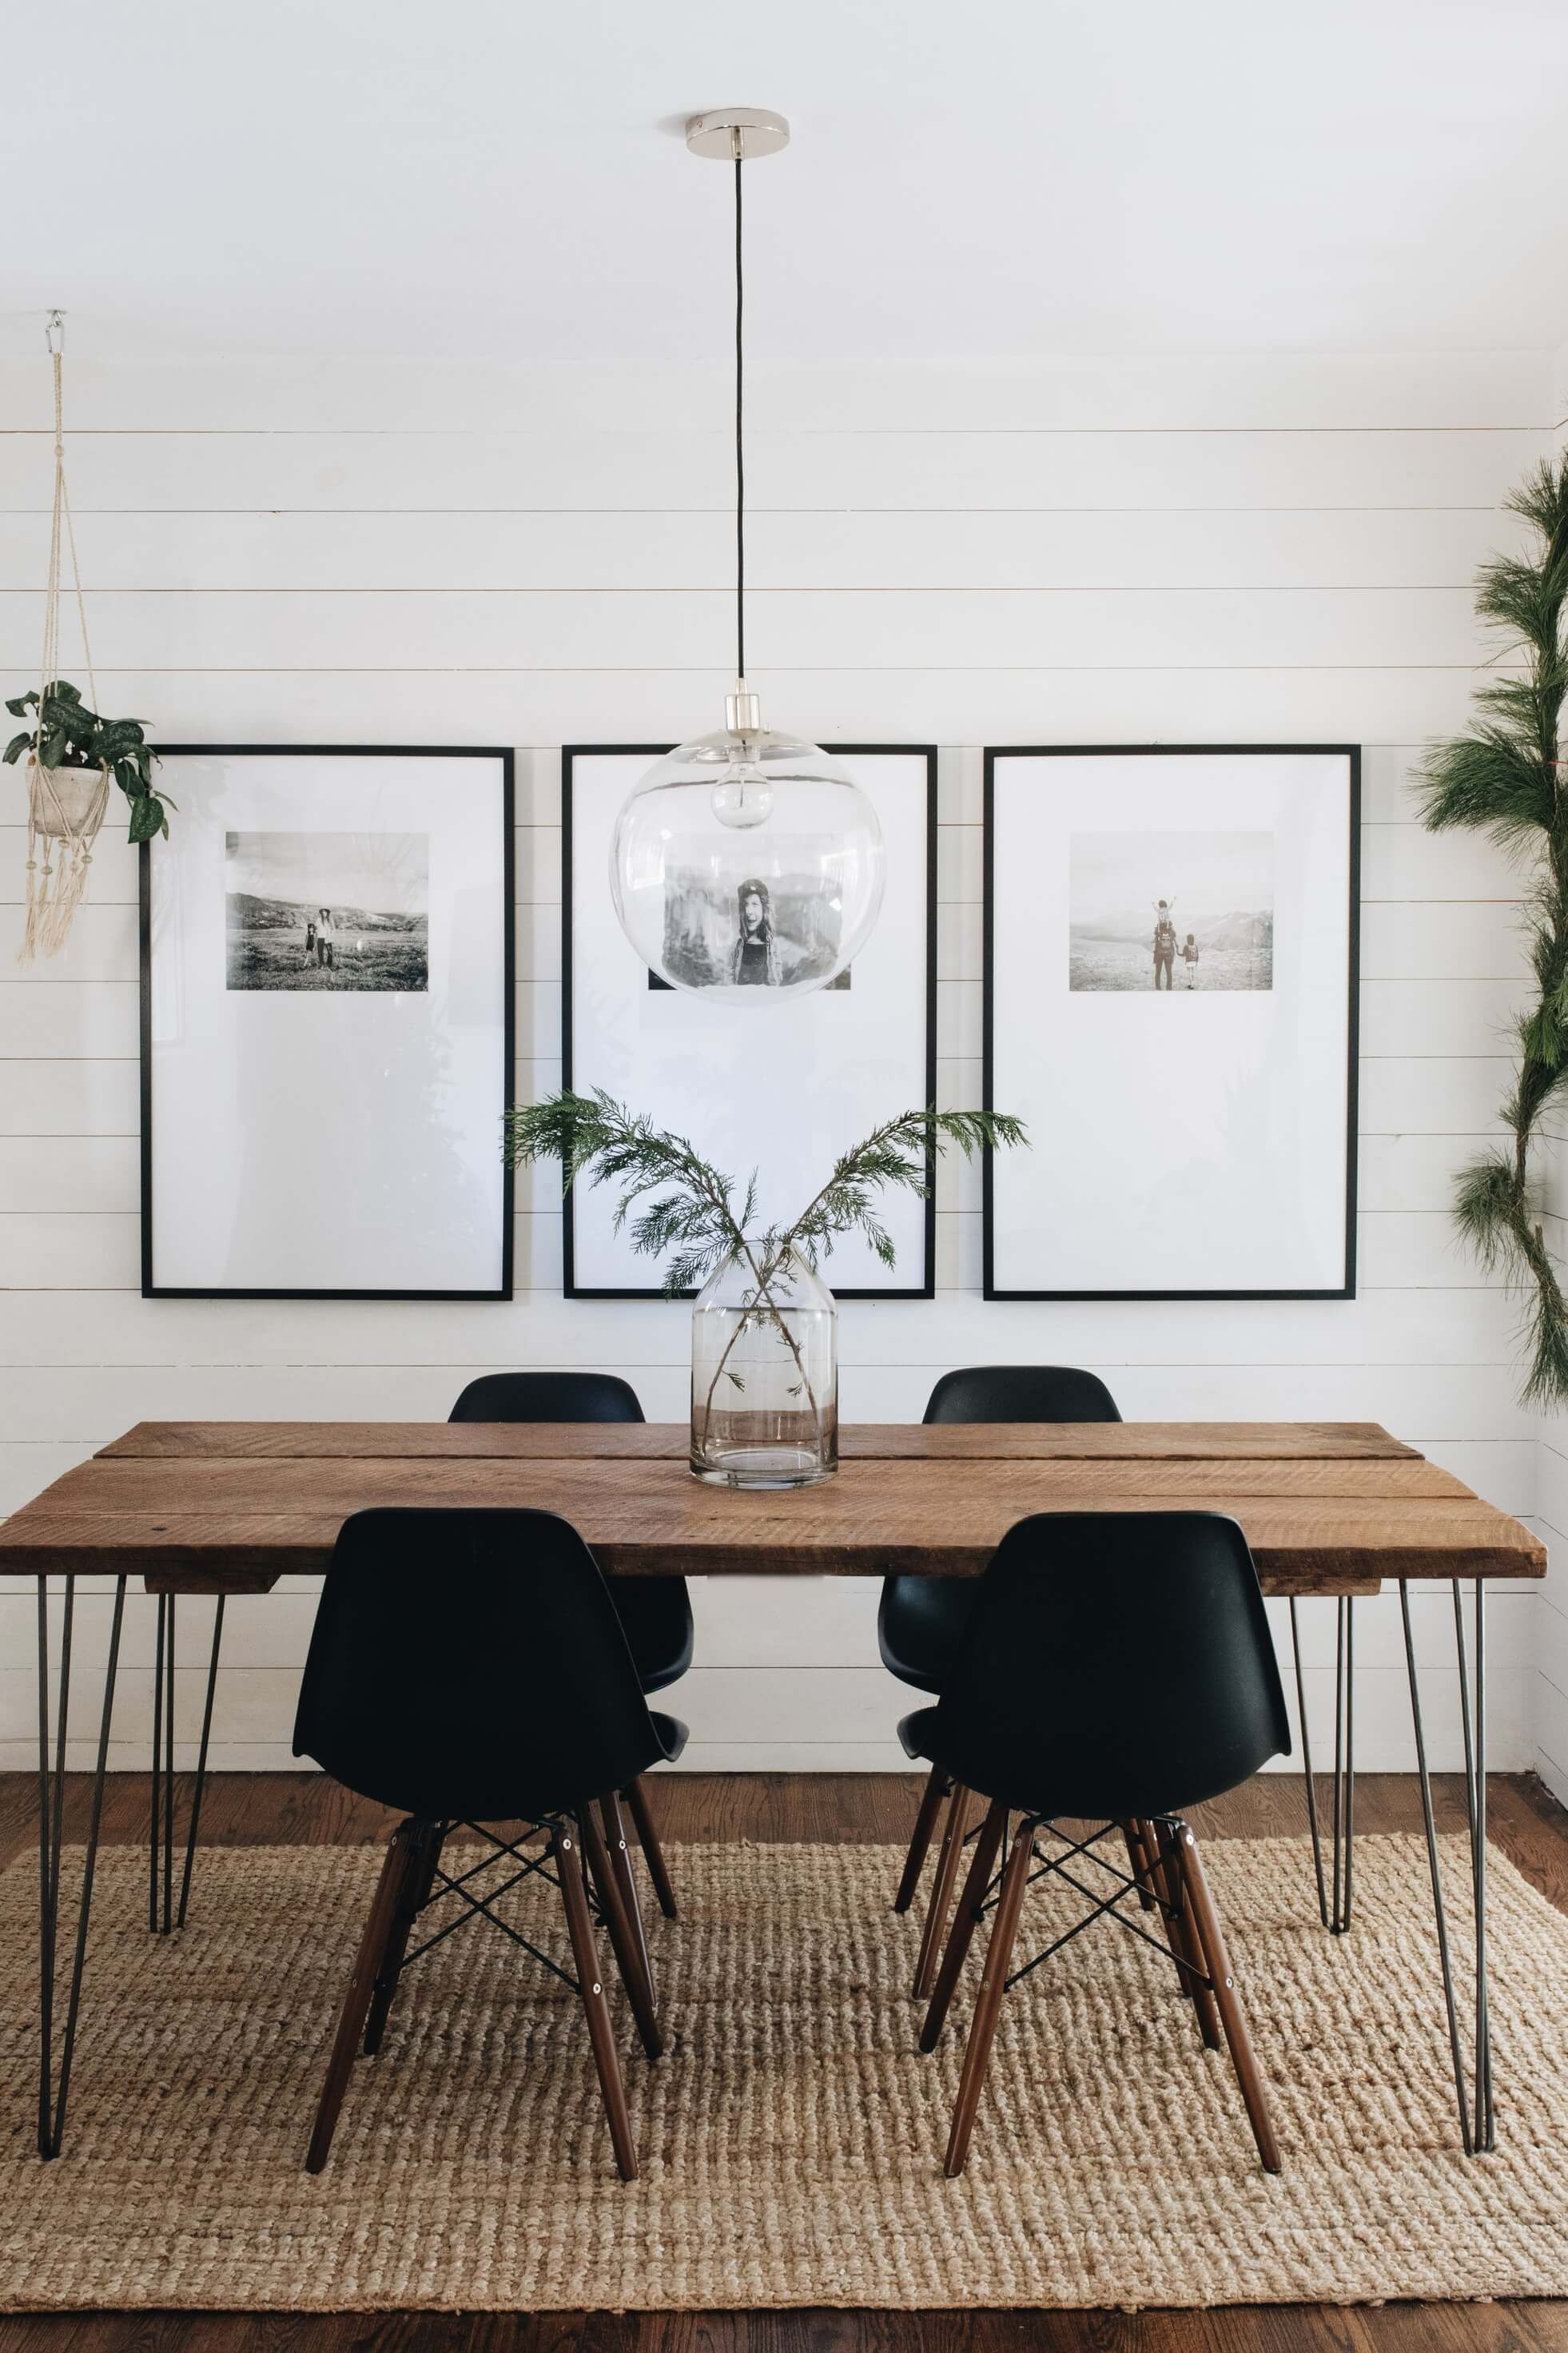 Use These Stunning Dining Room Ideas Pinterest All Pulled From Designer Homes To Update White Dining Room Black And White Dining Room Dining Room Inspiration